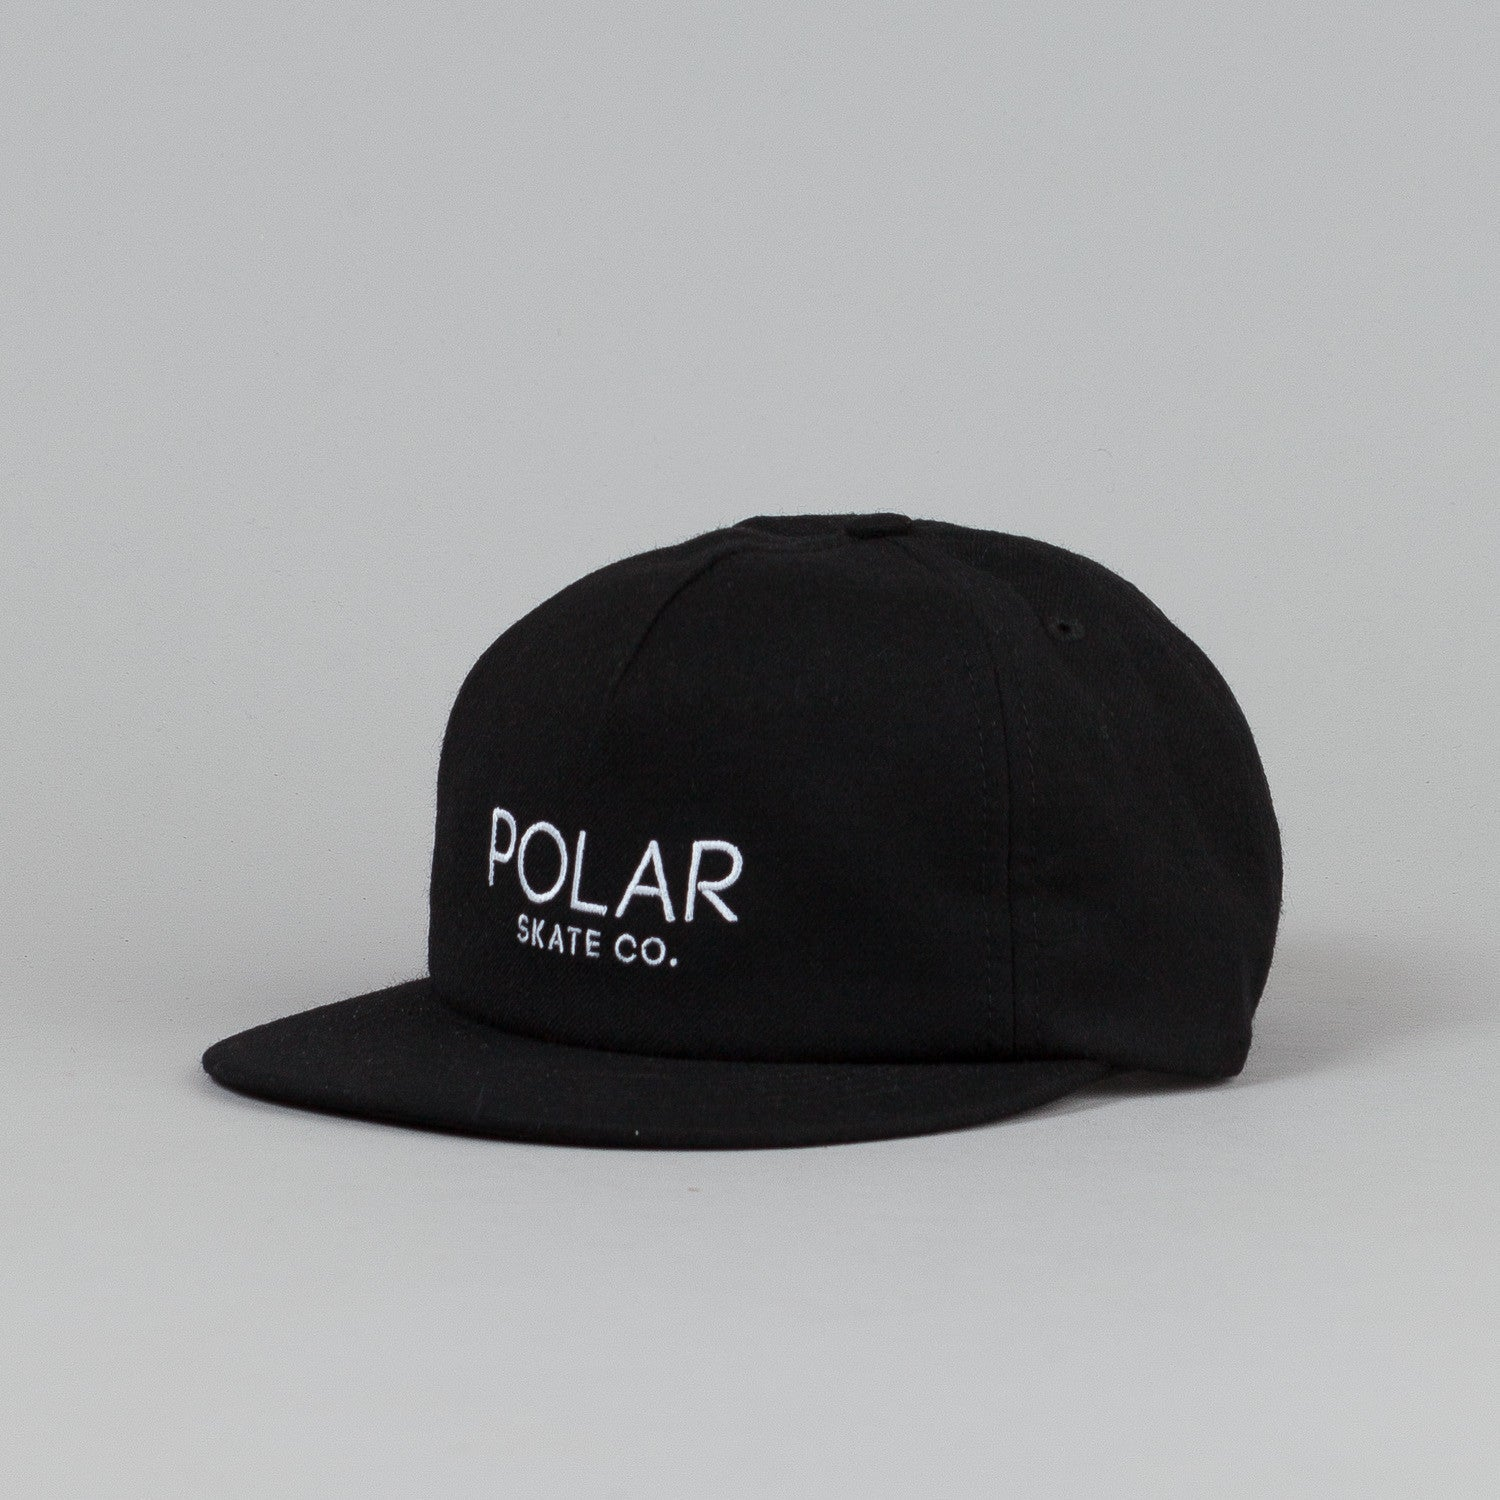 Polar Default Cap Black / White